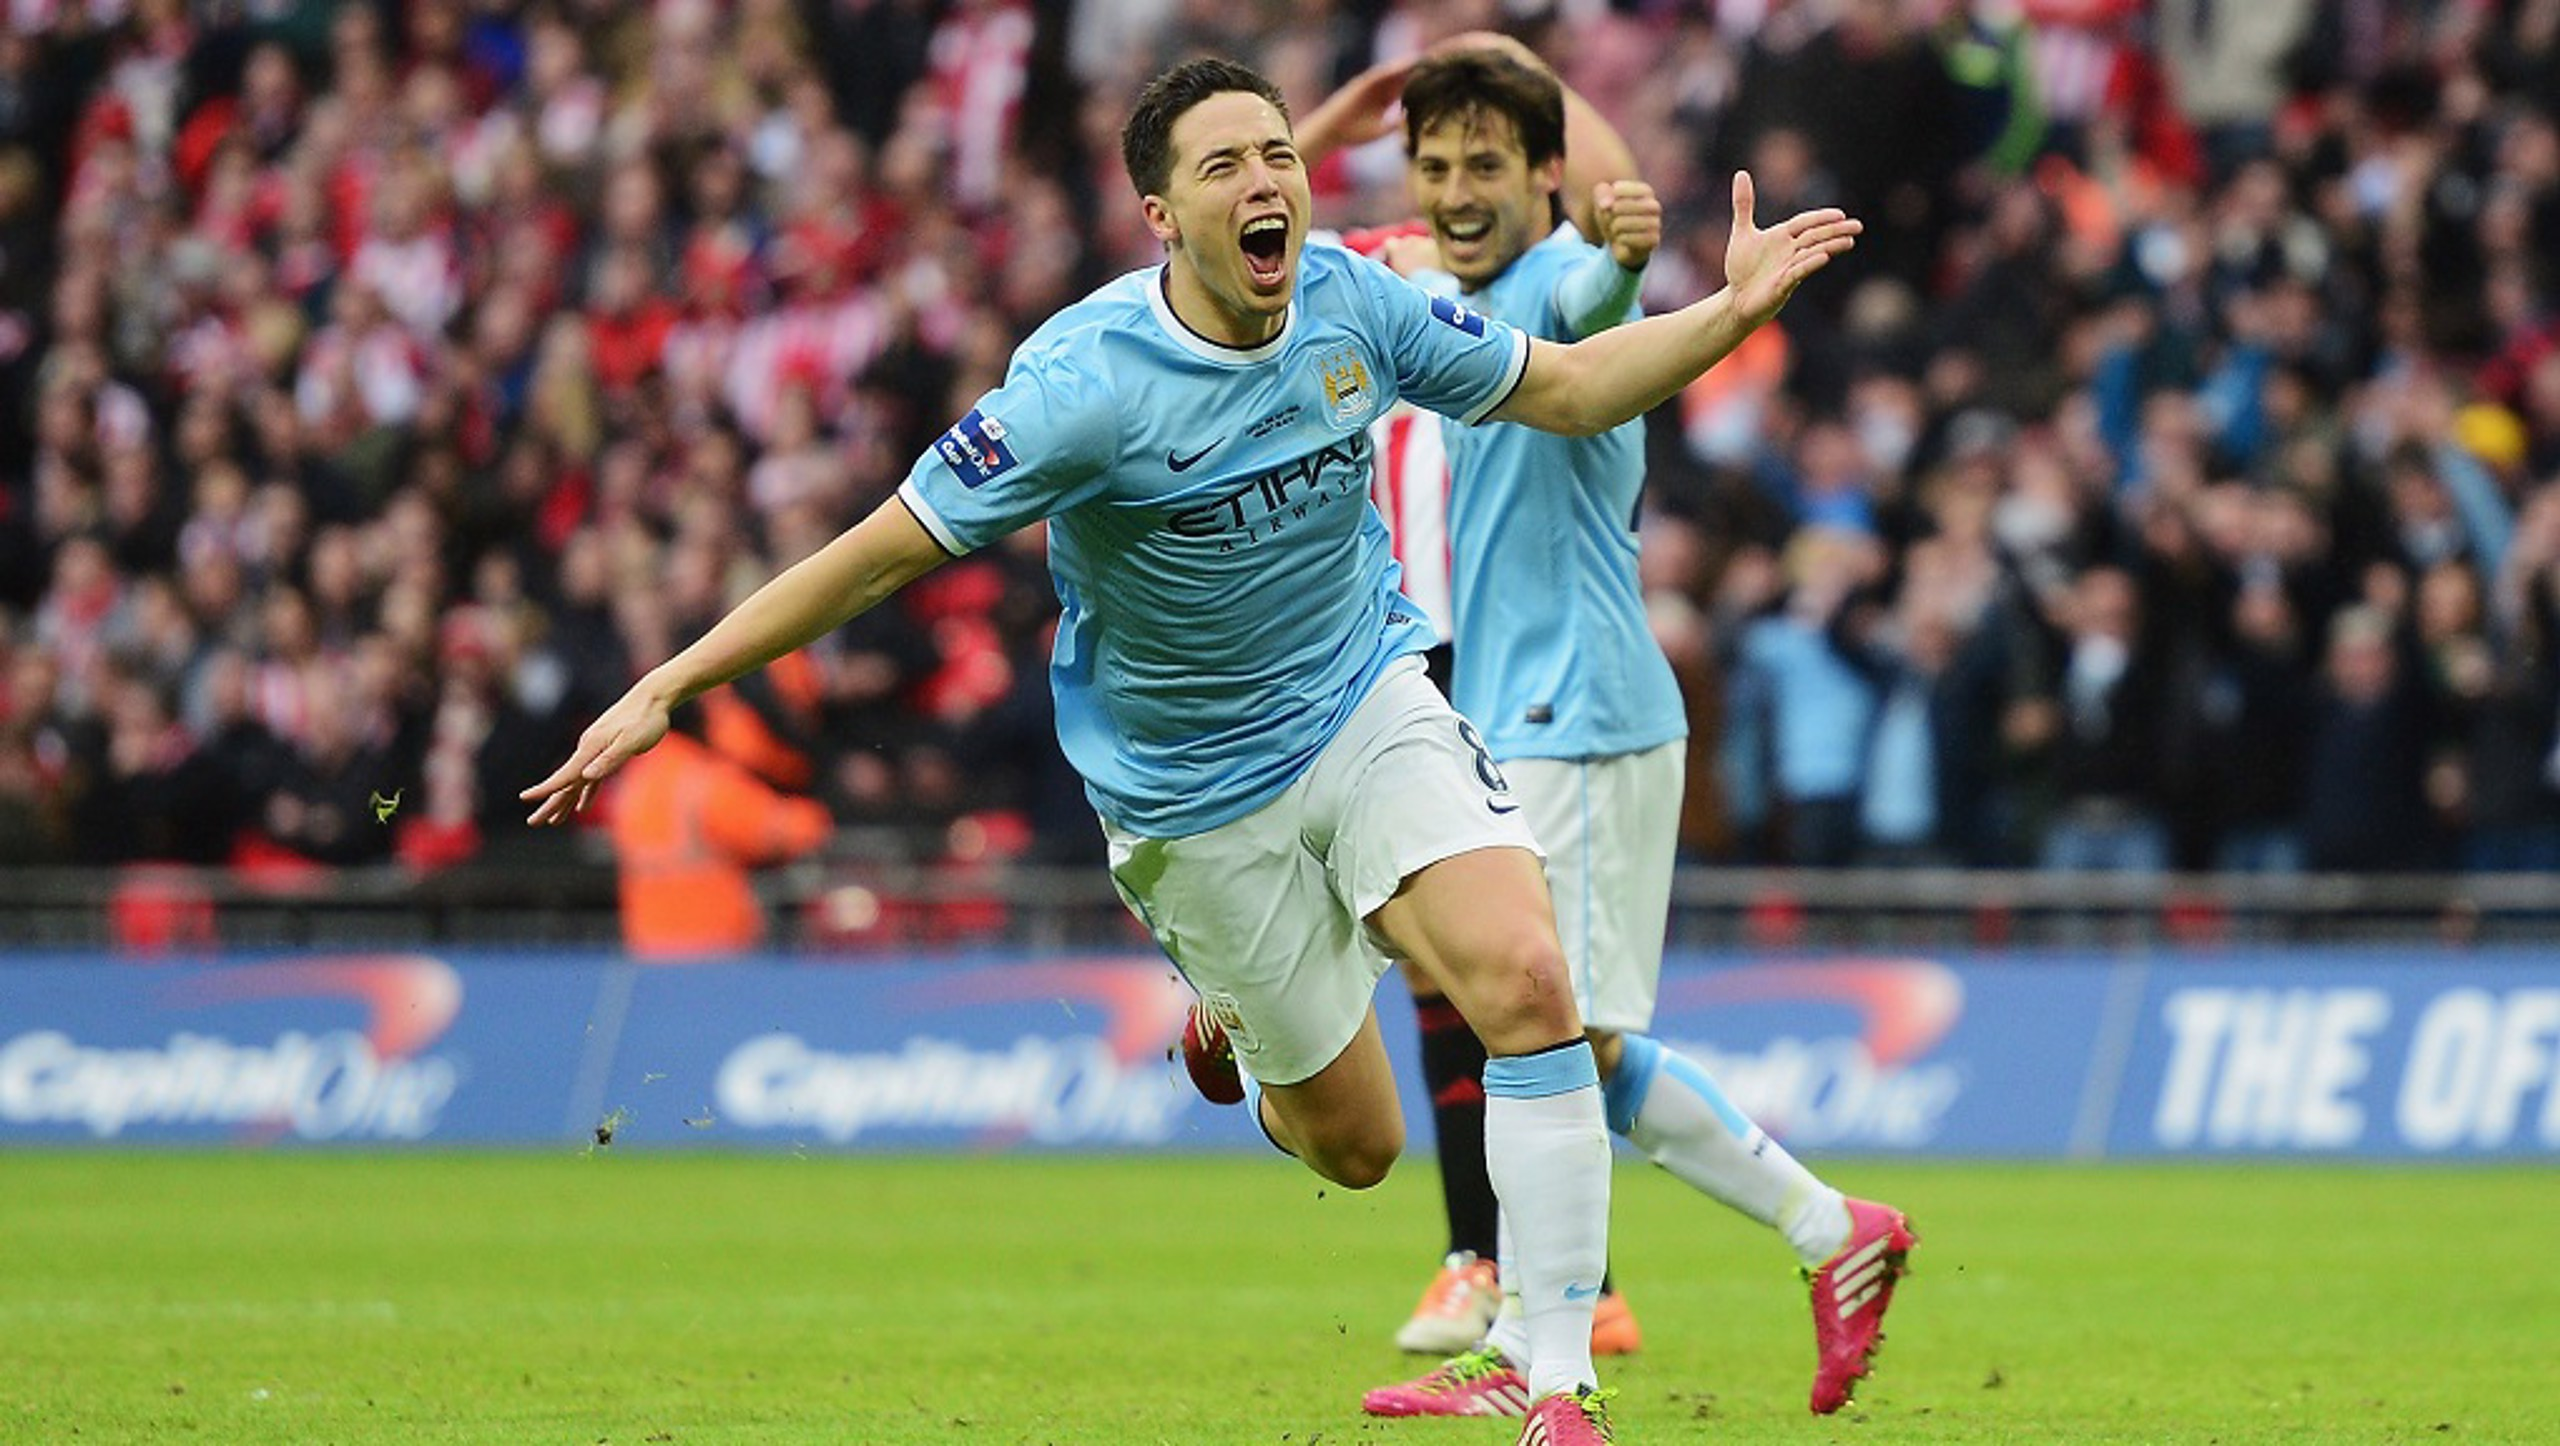 2014: Samir Nasri scores a beauty to put the Blues 2-1 up against Sunderland, just minutes after Yaya Toure's 30-yard screamer